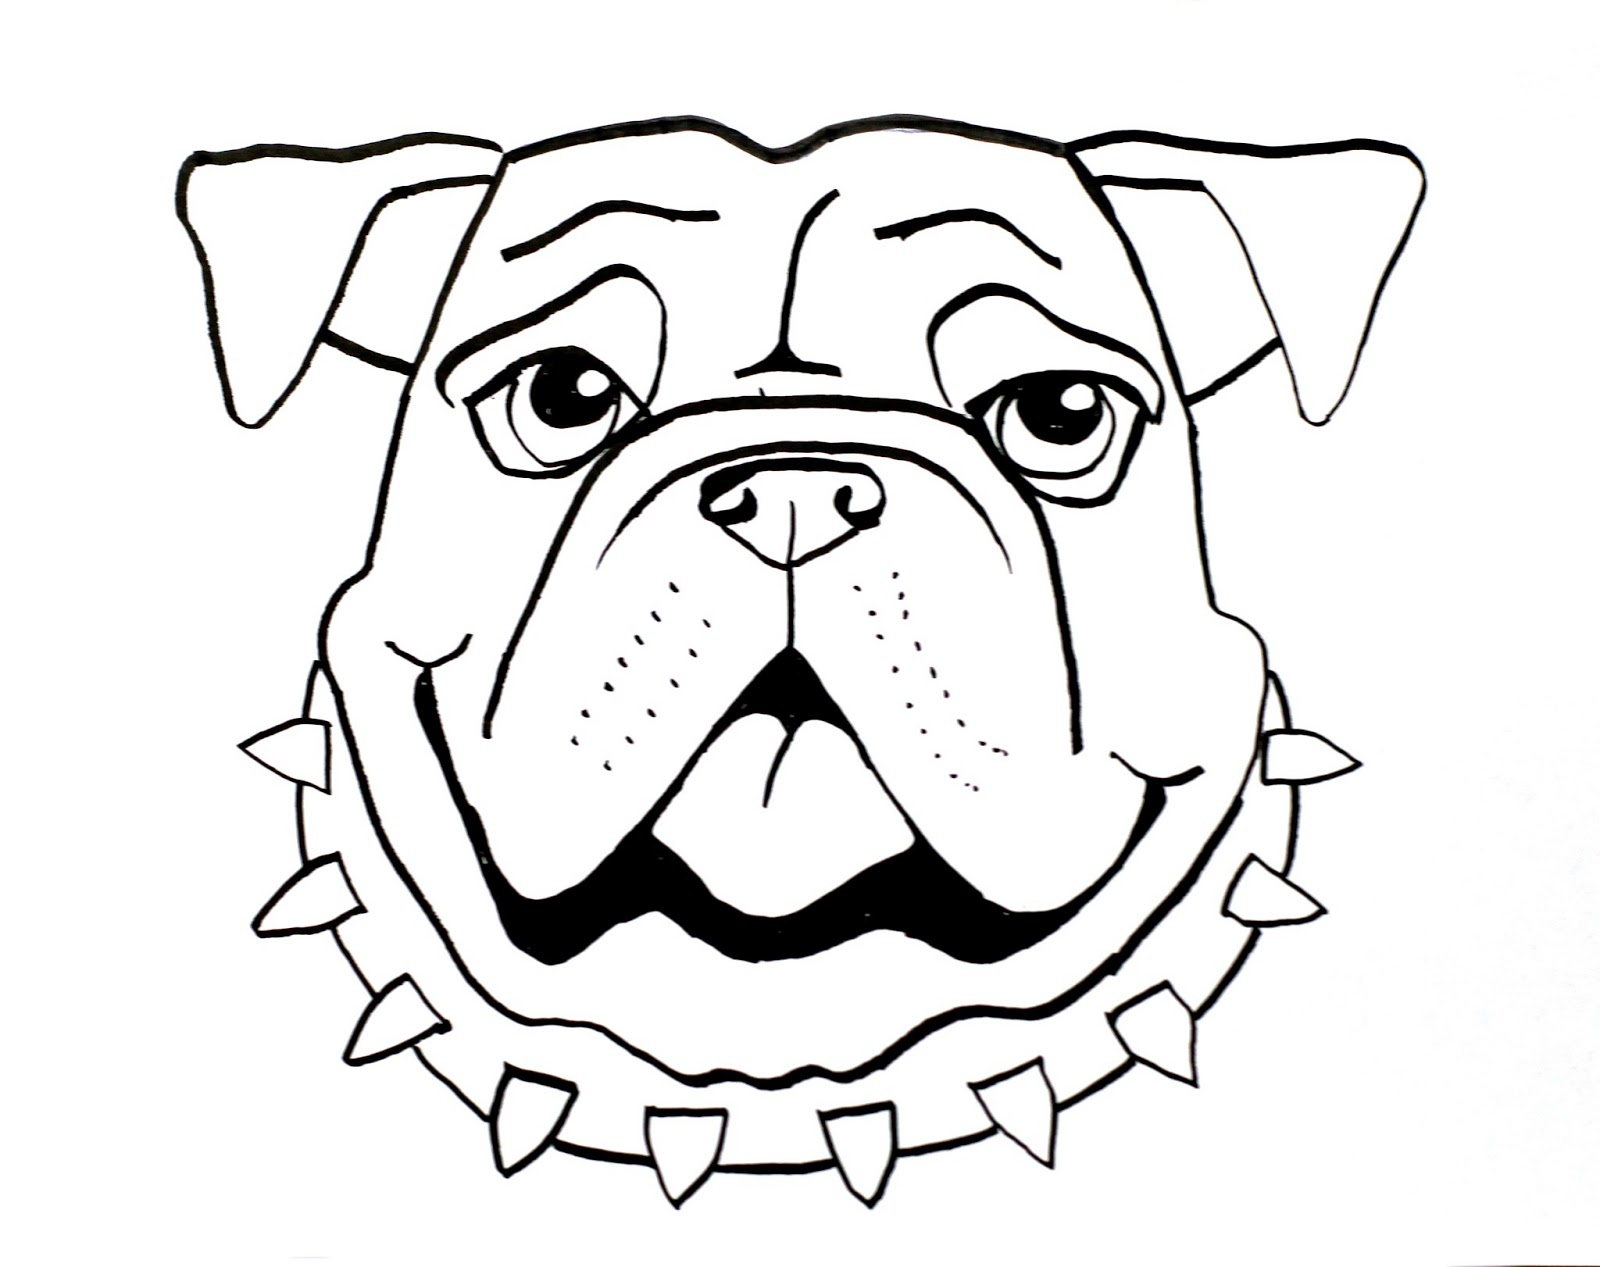 1600x1267 Easy Sketch To Bull Face Smart Class Bull Dog Draw A Long